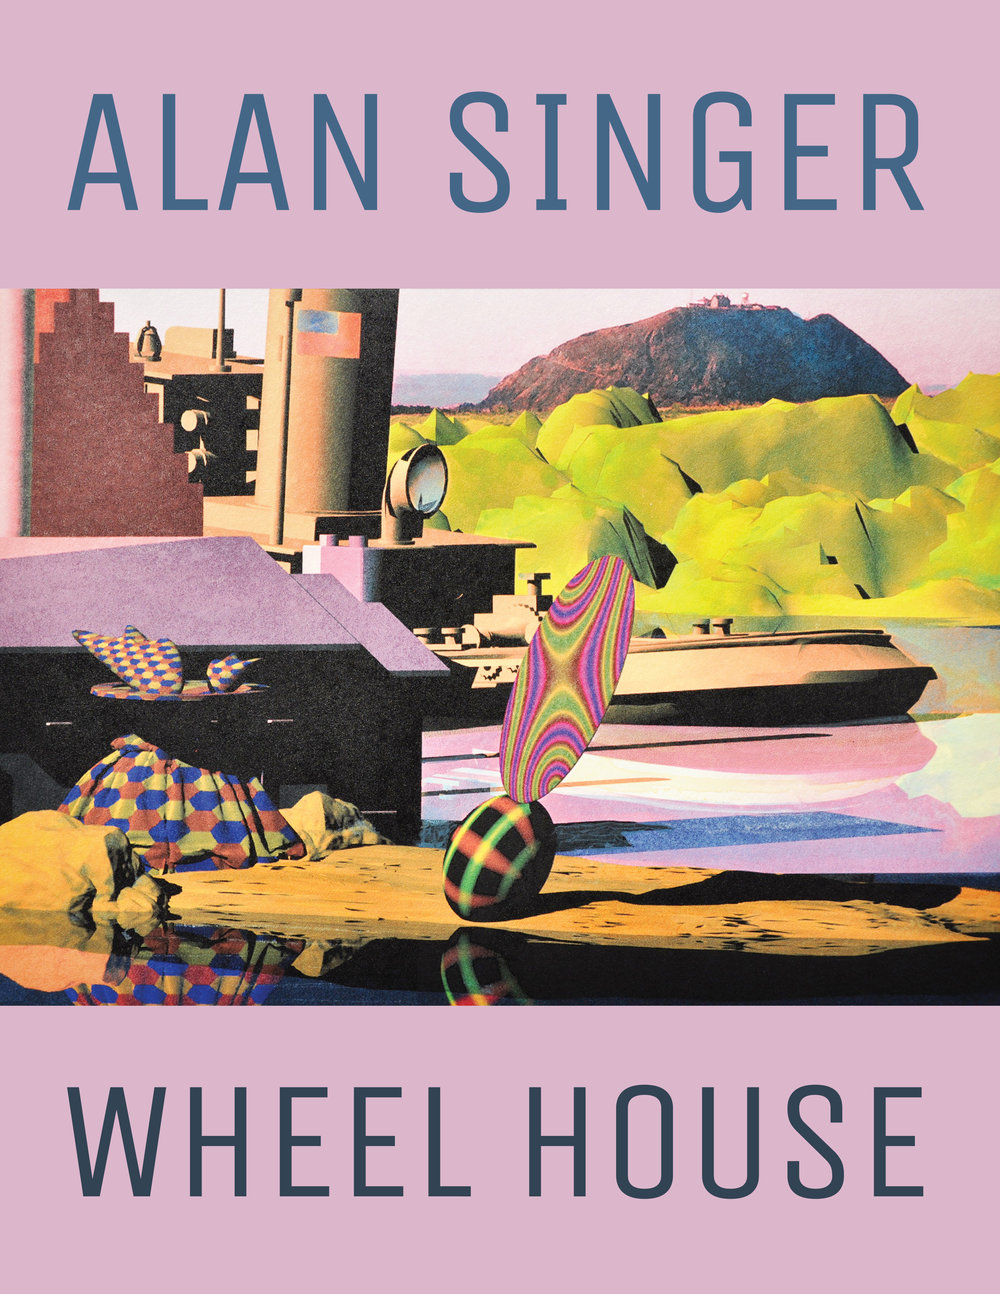 16.Alan Singer cover.jpg